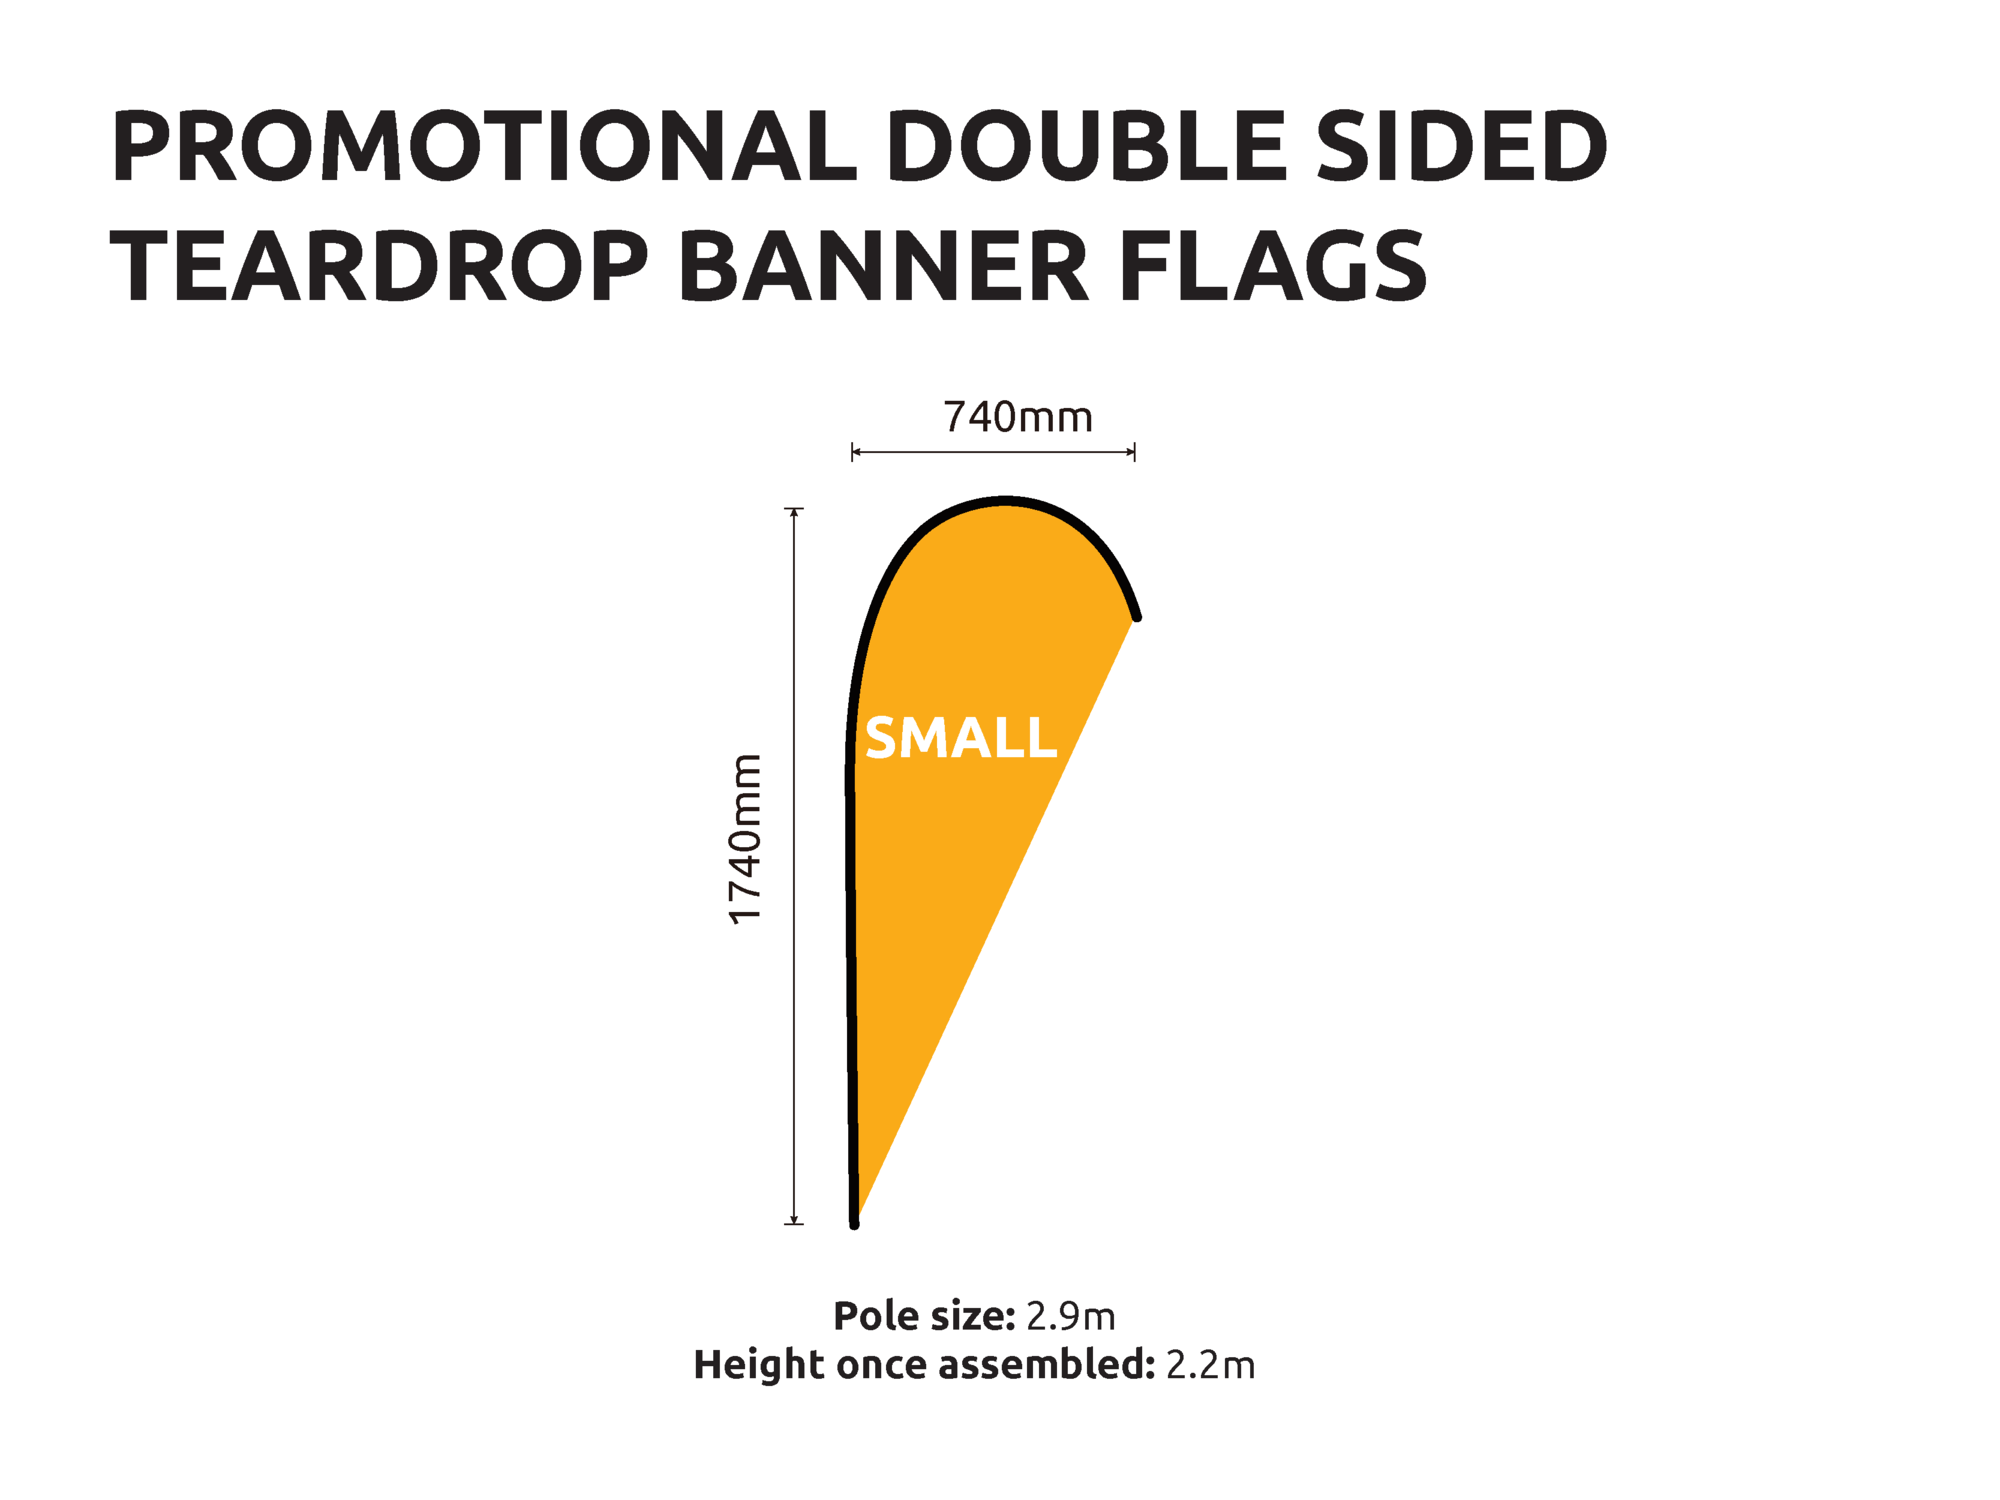 Promotional Banner Flags small double sided teardrop size